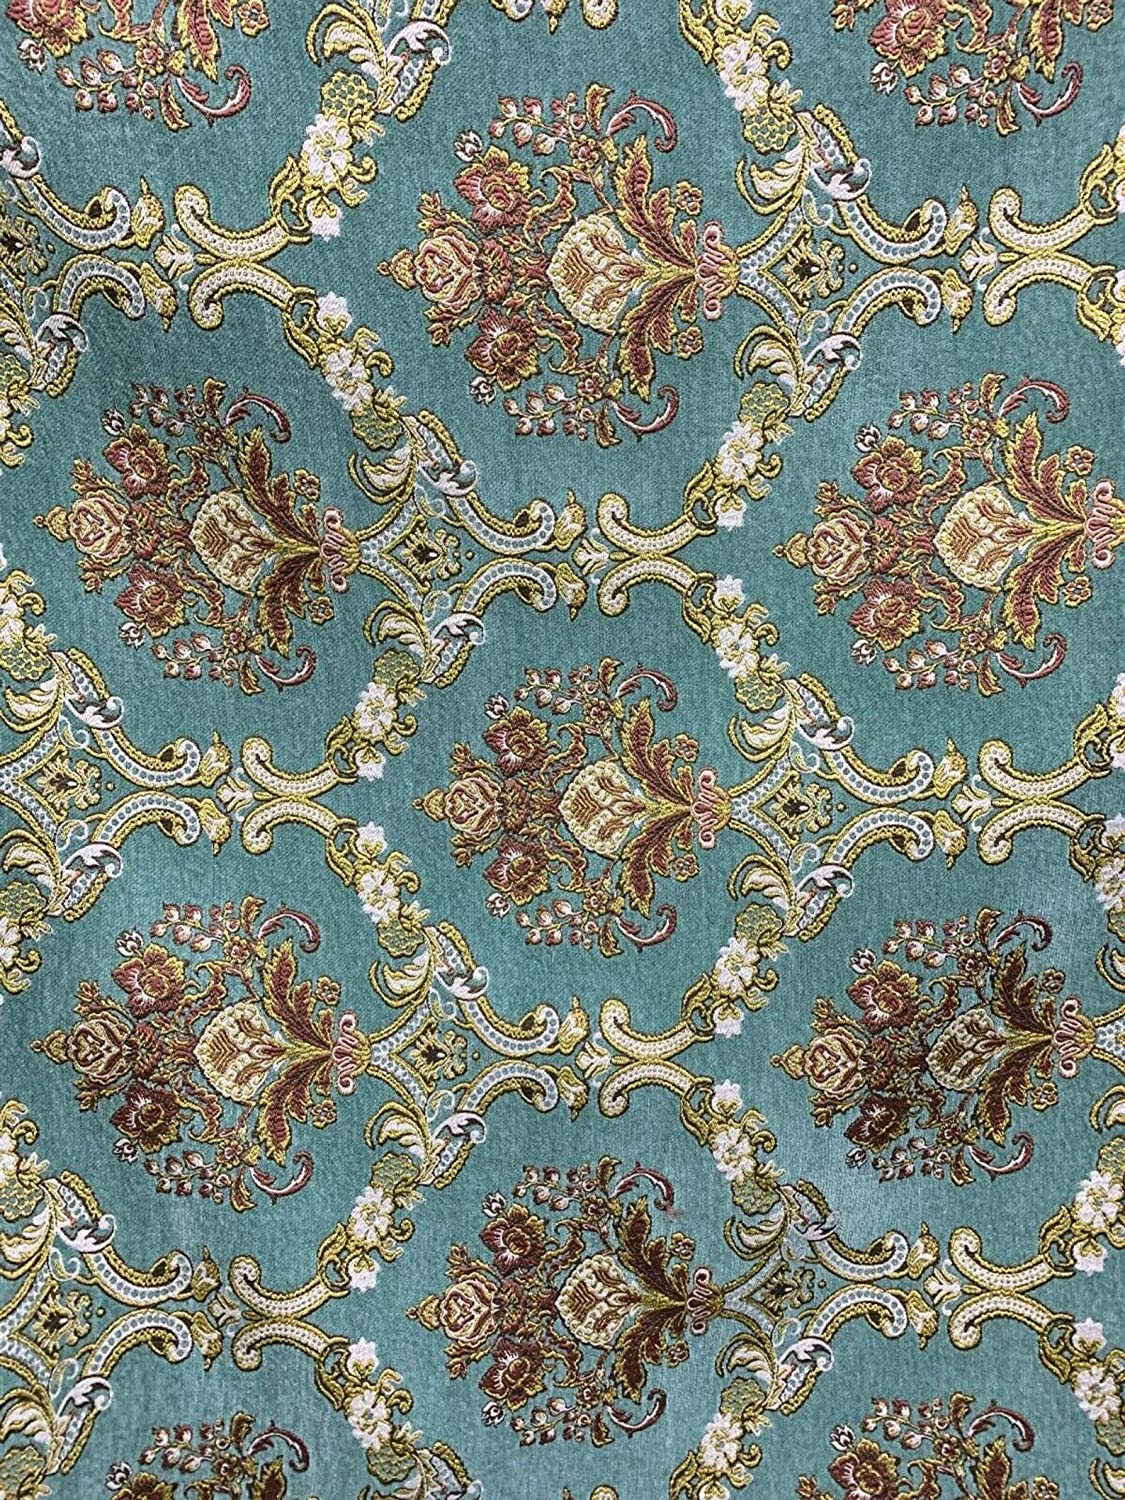 Light Teal Gold Damask Chenille in Brocade Upholstery Free shipping on posting reviews Fees free!! 54 Fabric